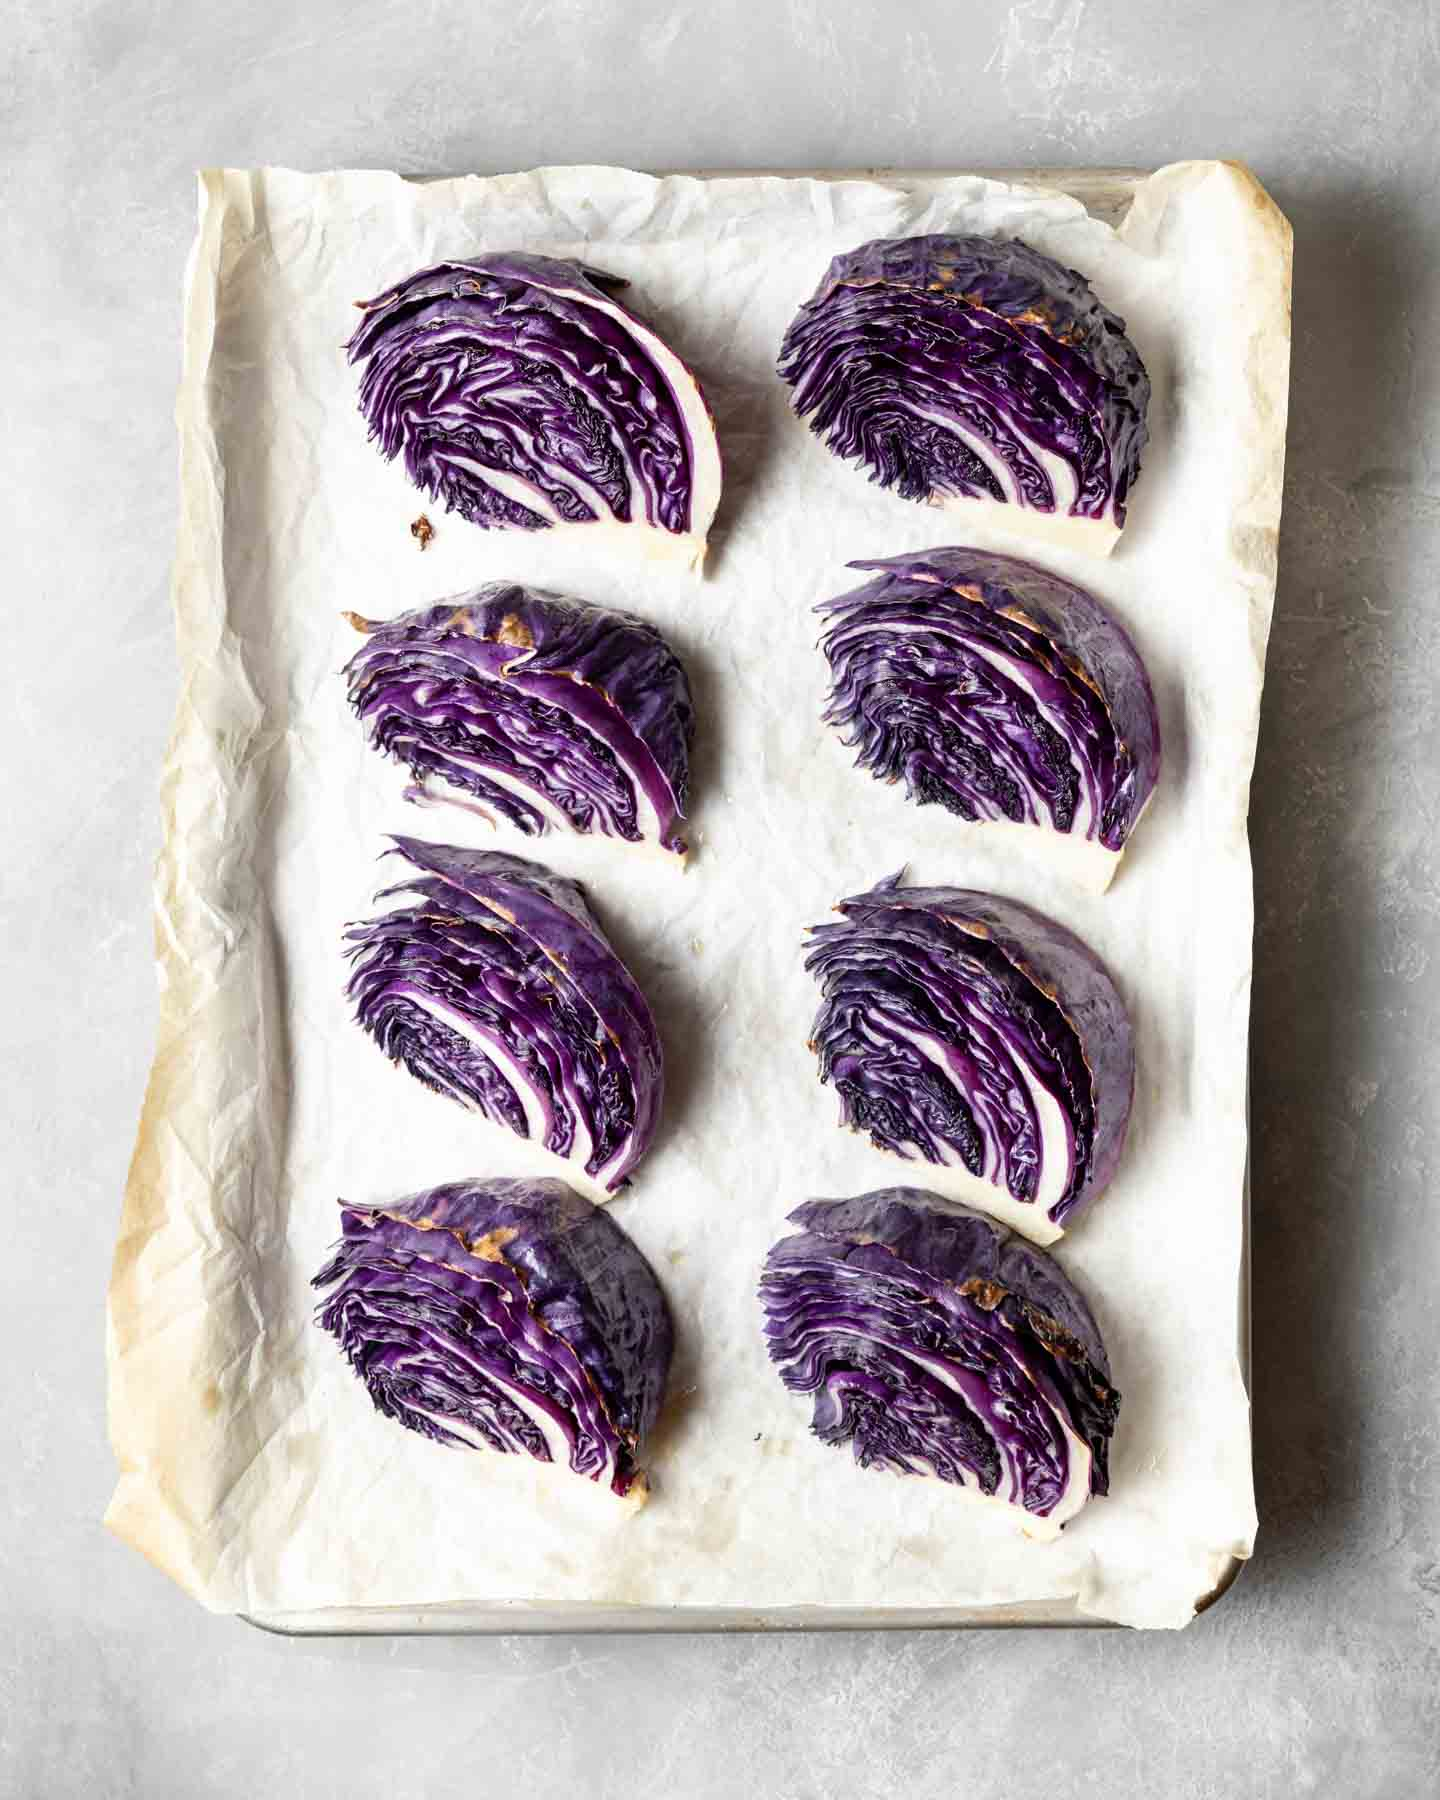 Roasted Red Cabbage on a baking sheet, fresh from the oven.